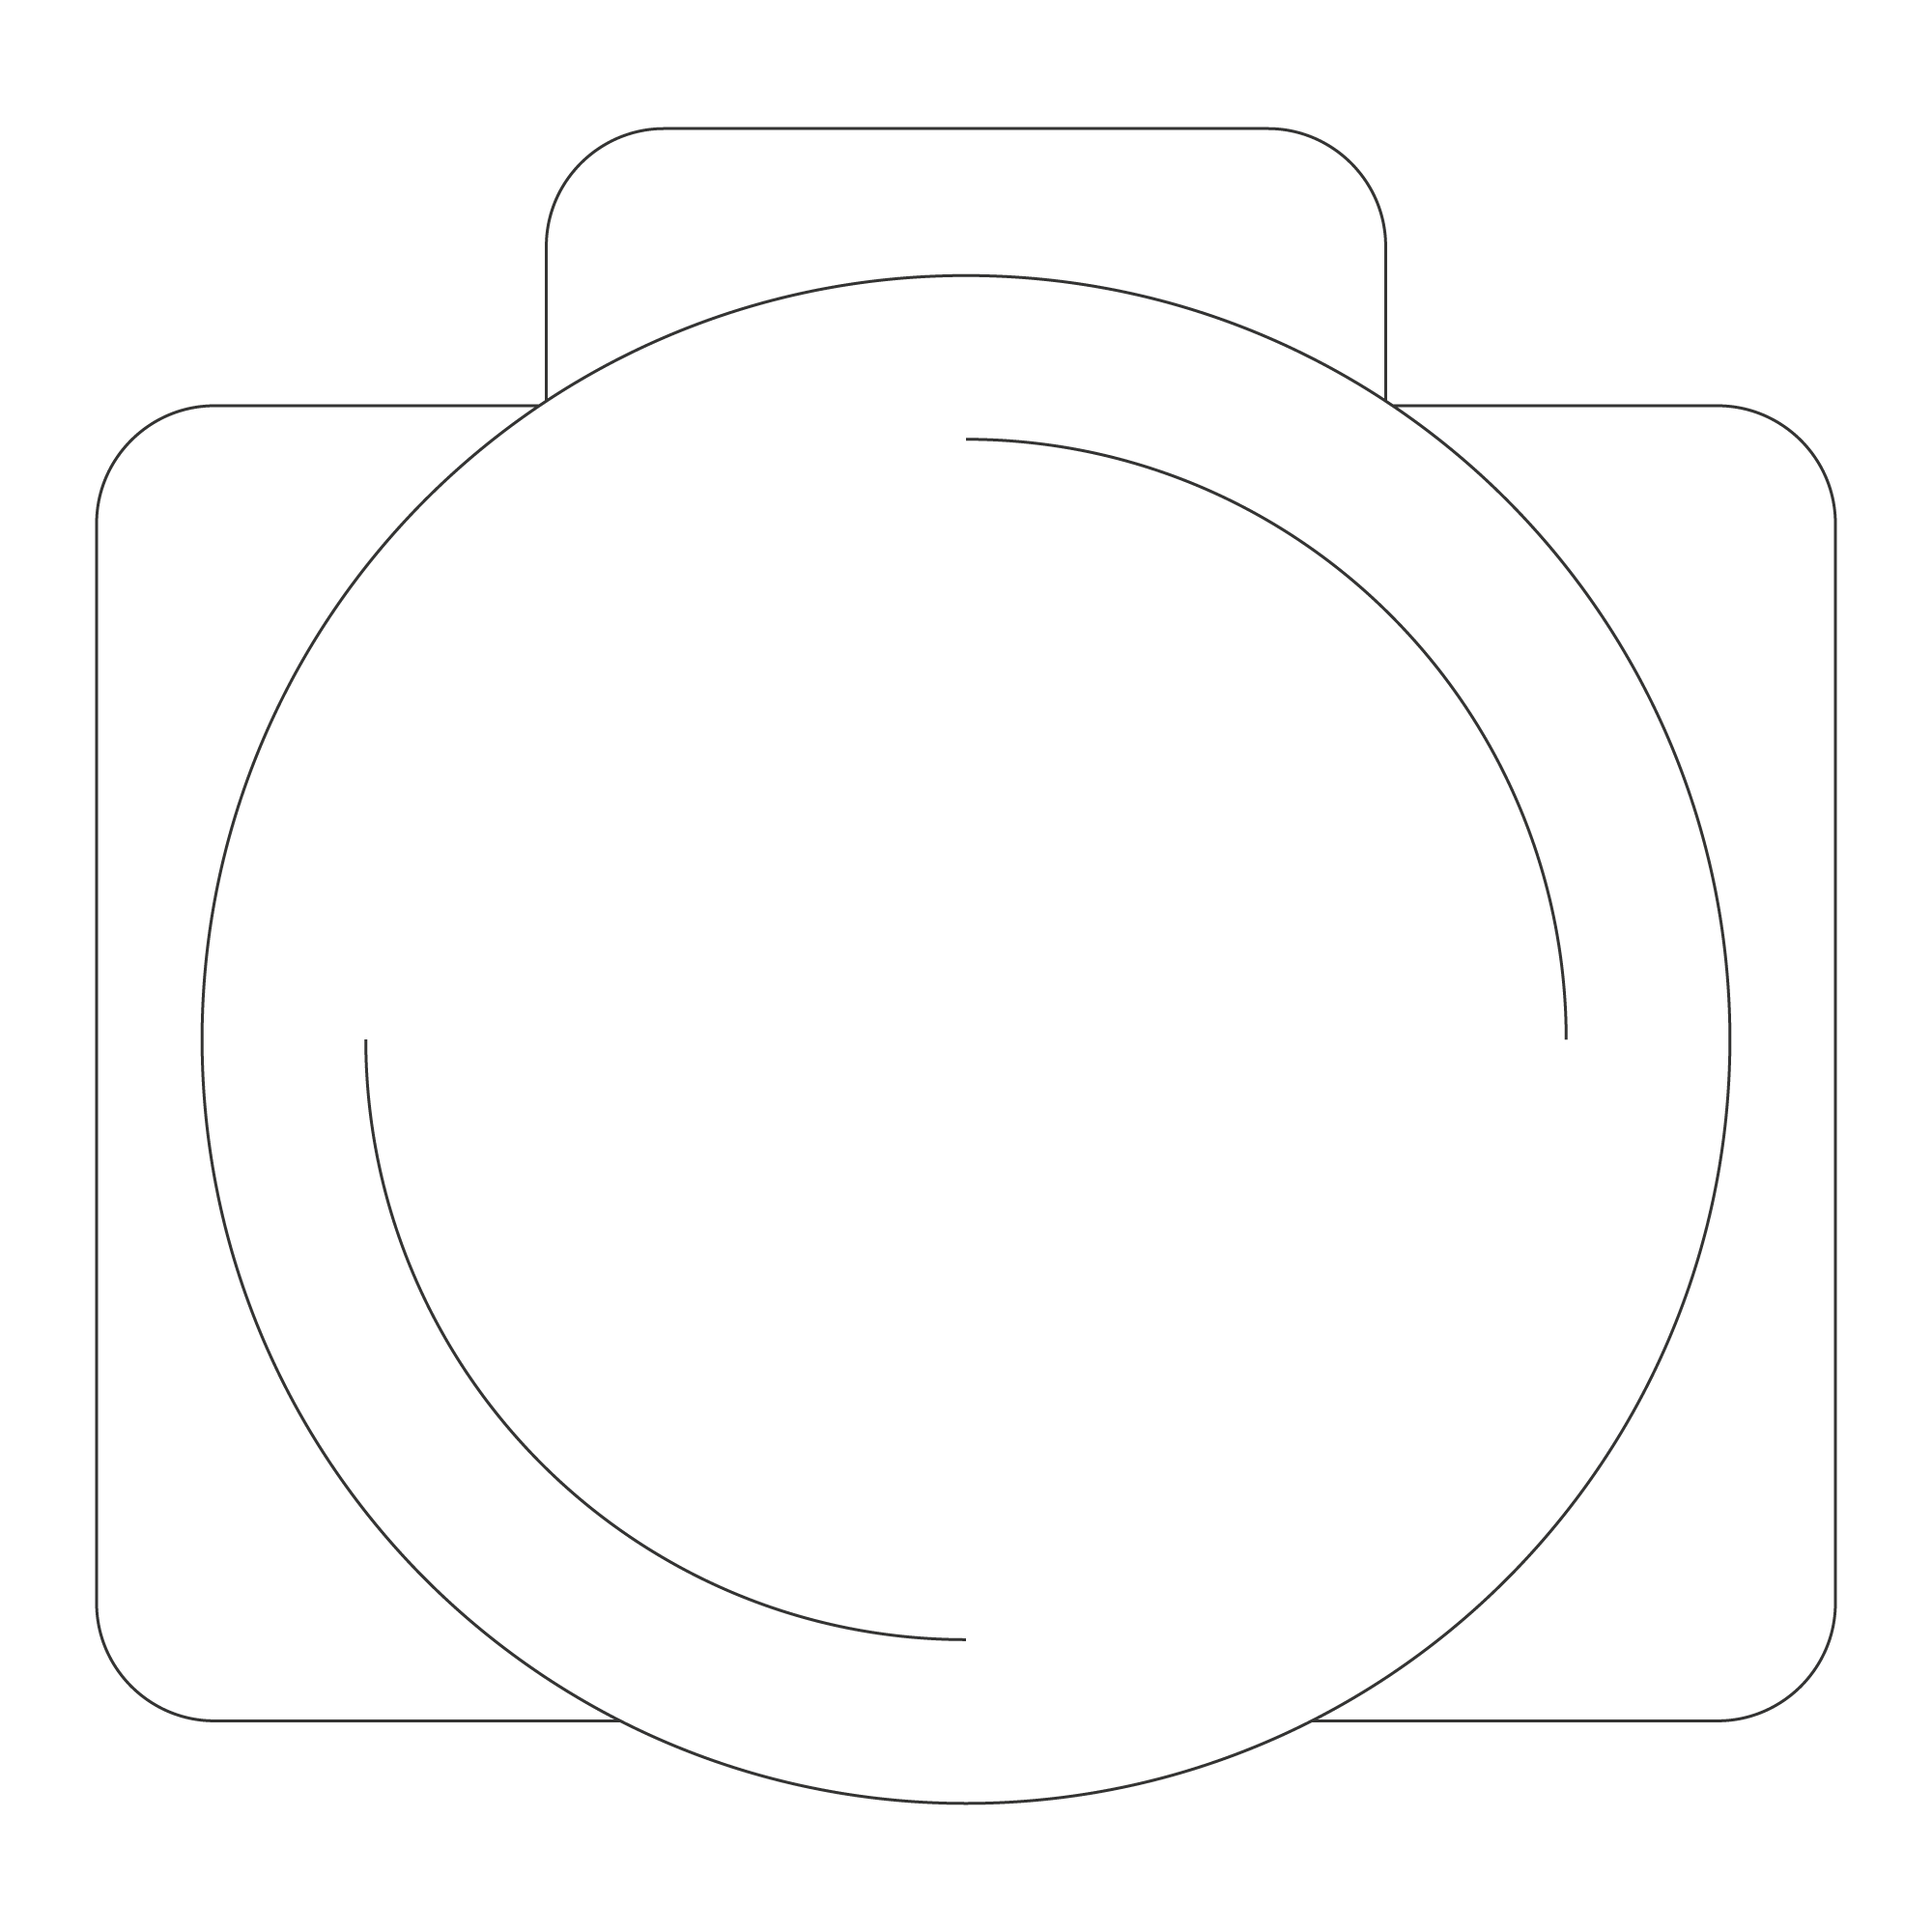 photography-icon-free-download-343434